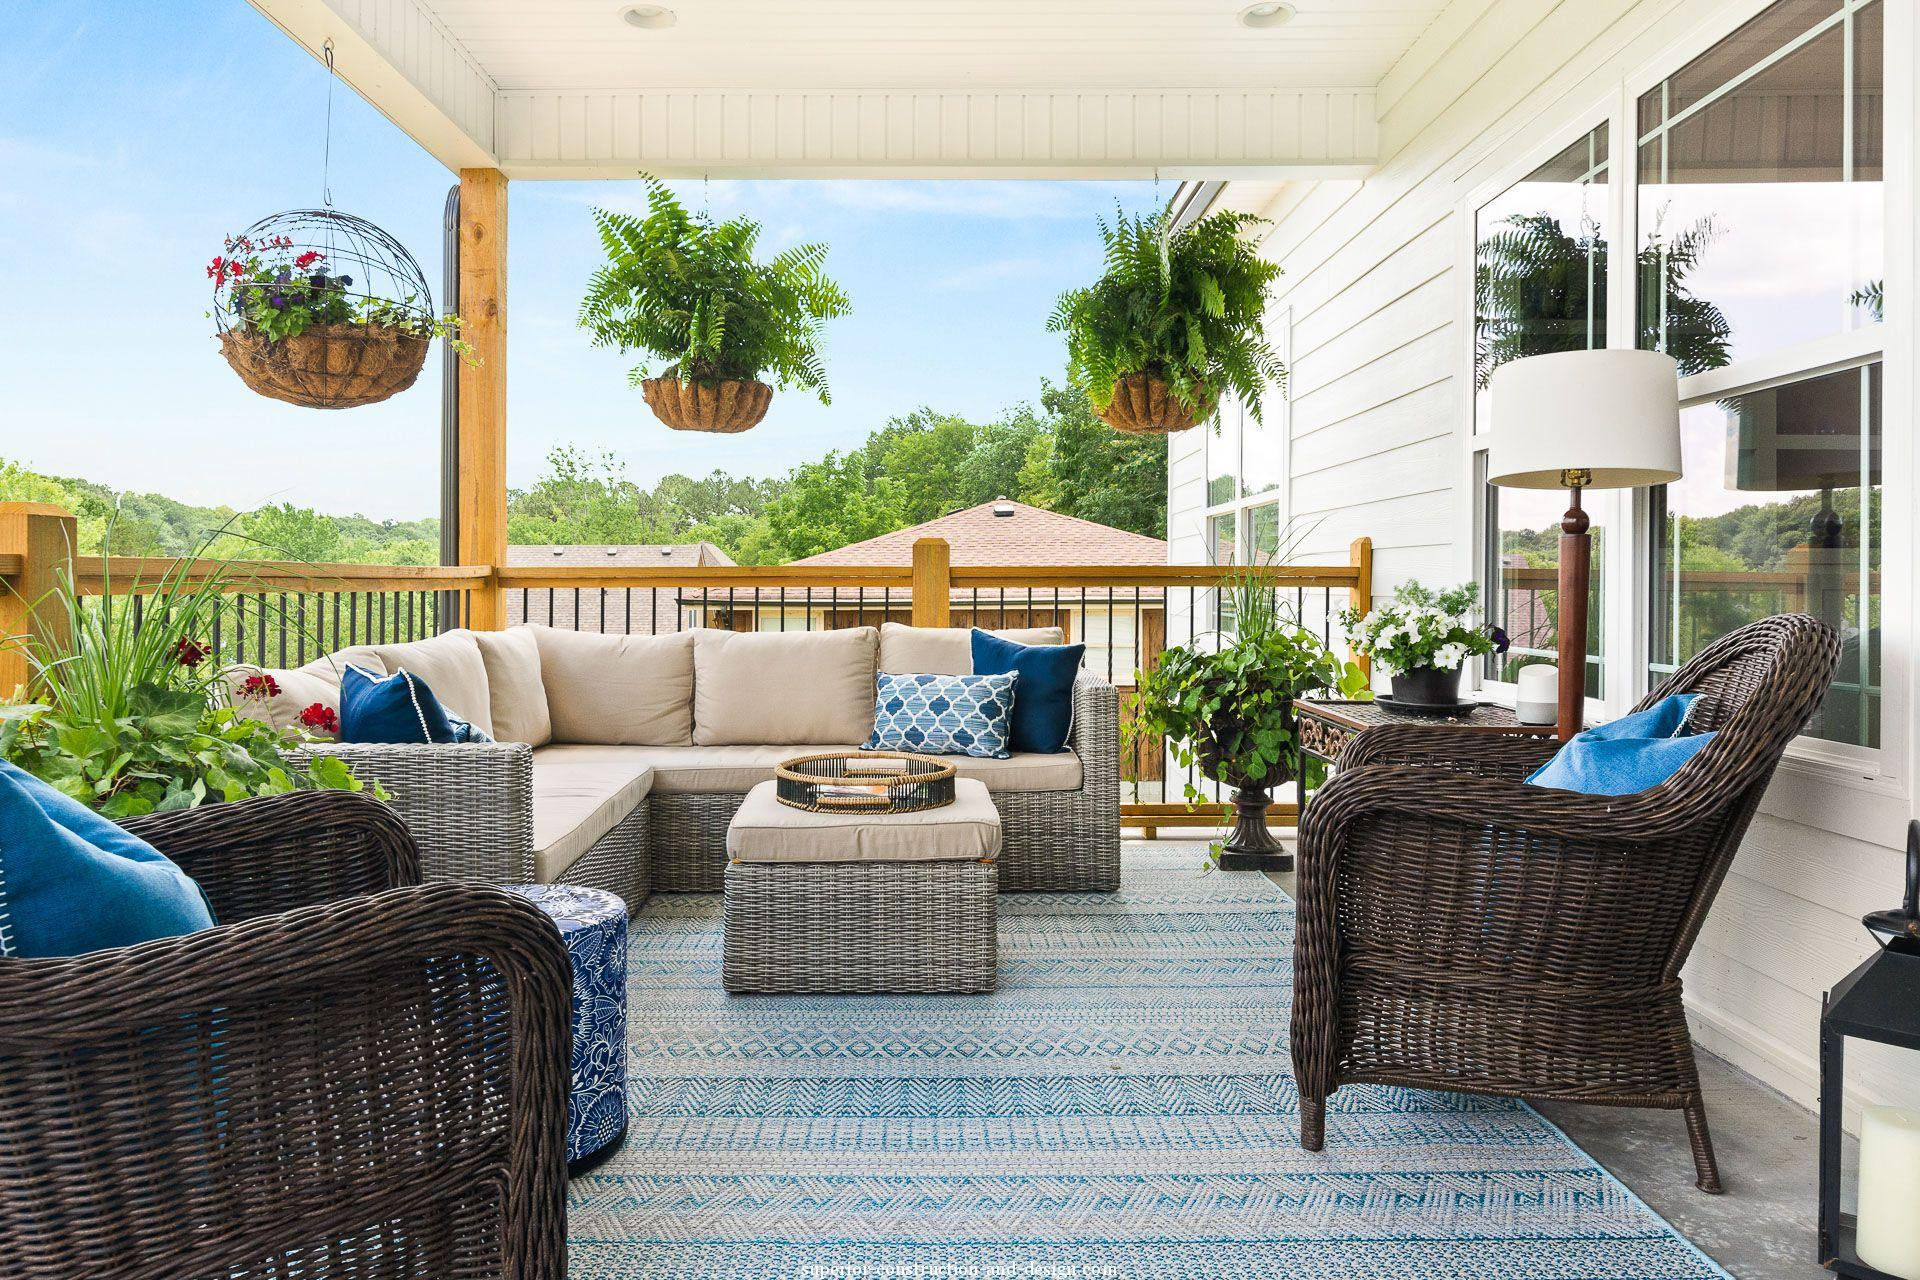 interior design new build lake home tour GC ID covered porch fresh blue outdoor furniture entertaining area